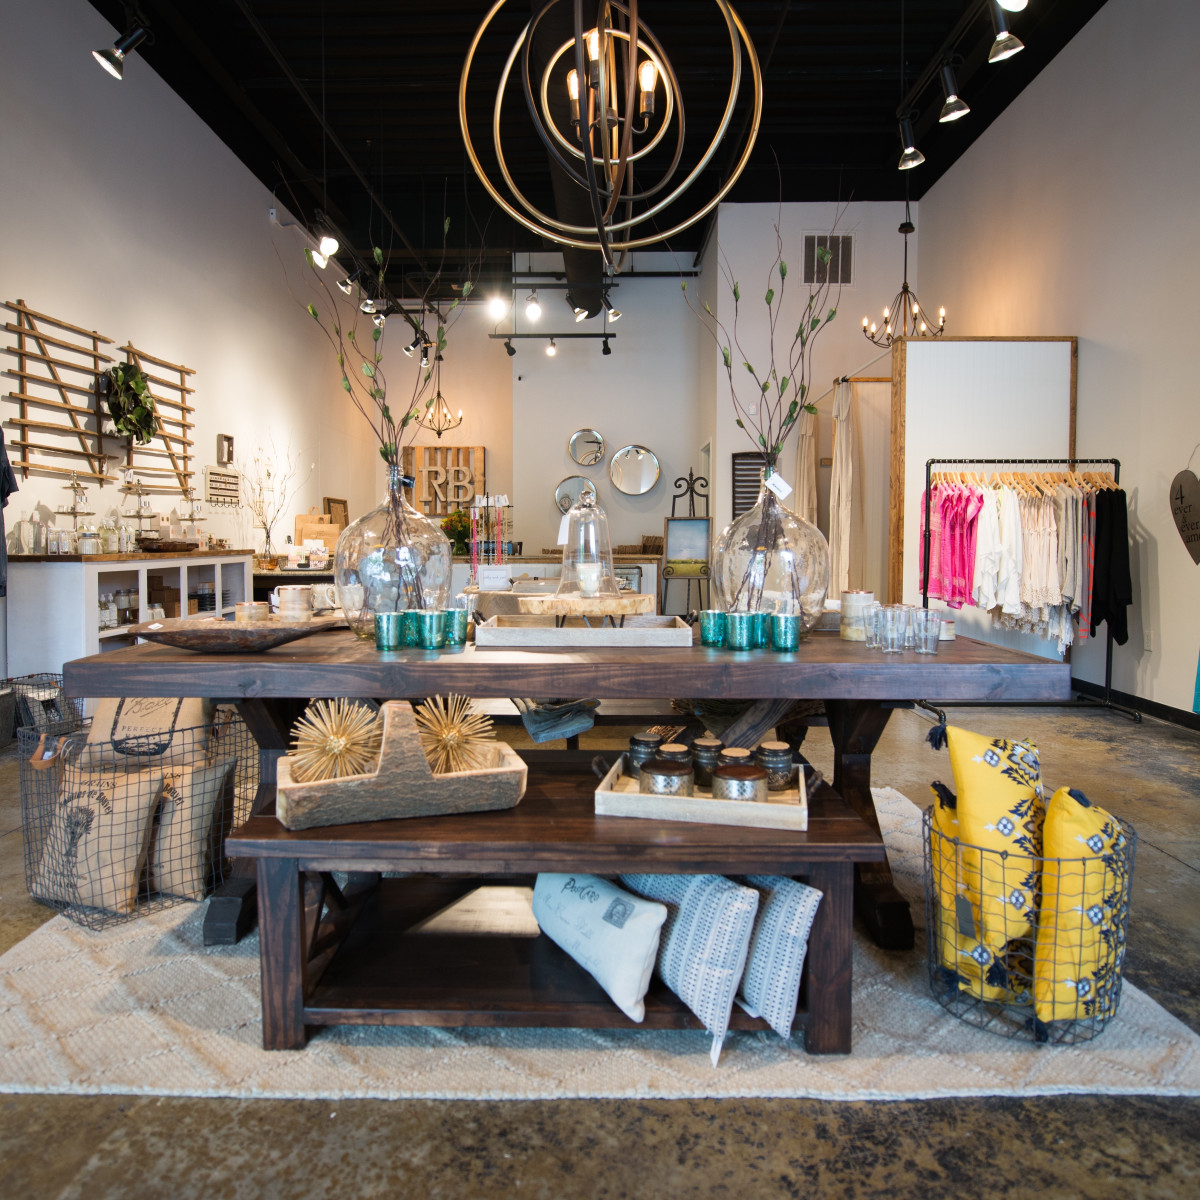 Where To Shop Right Now: 10 Cool New Stores That Make